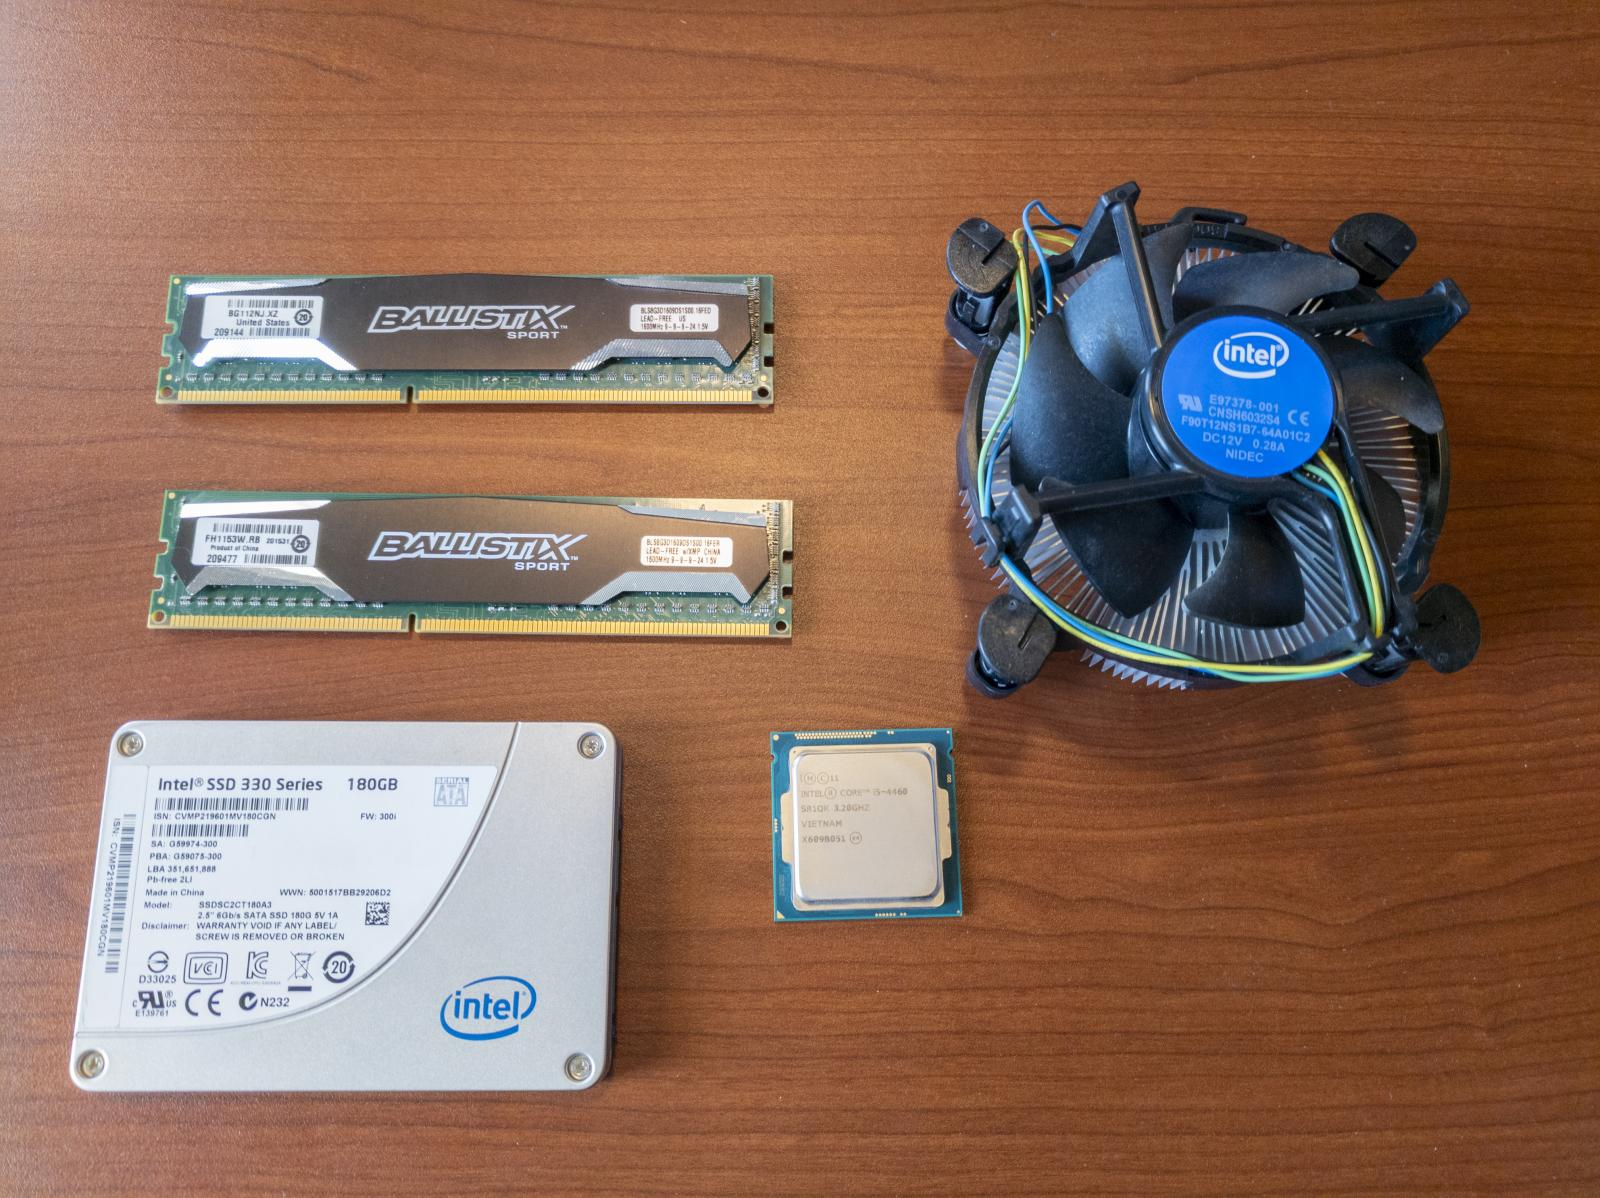 Photo of Gigabyte GA-Z87X-UD5H, i5-4460, 16GB 1600MHz DDR3, 180GB Intel SSD combo